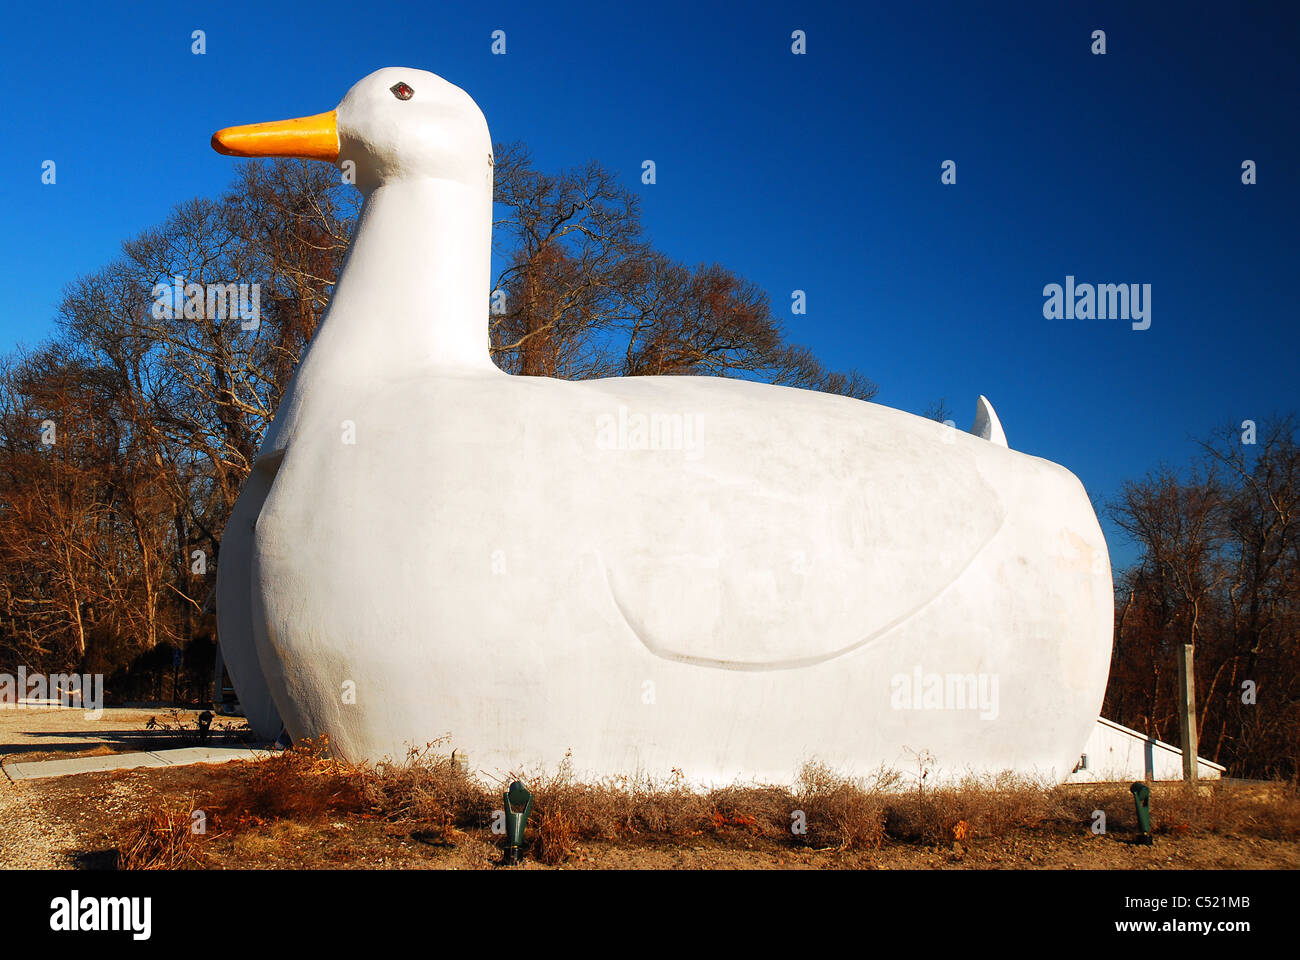 The Big Duck, a roadside attraction in Flanders, Long Island, NY - Stock Image